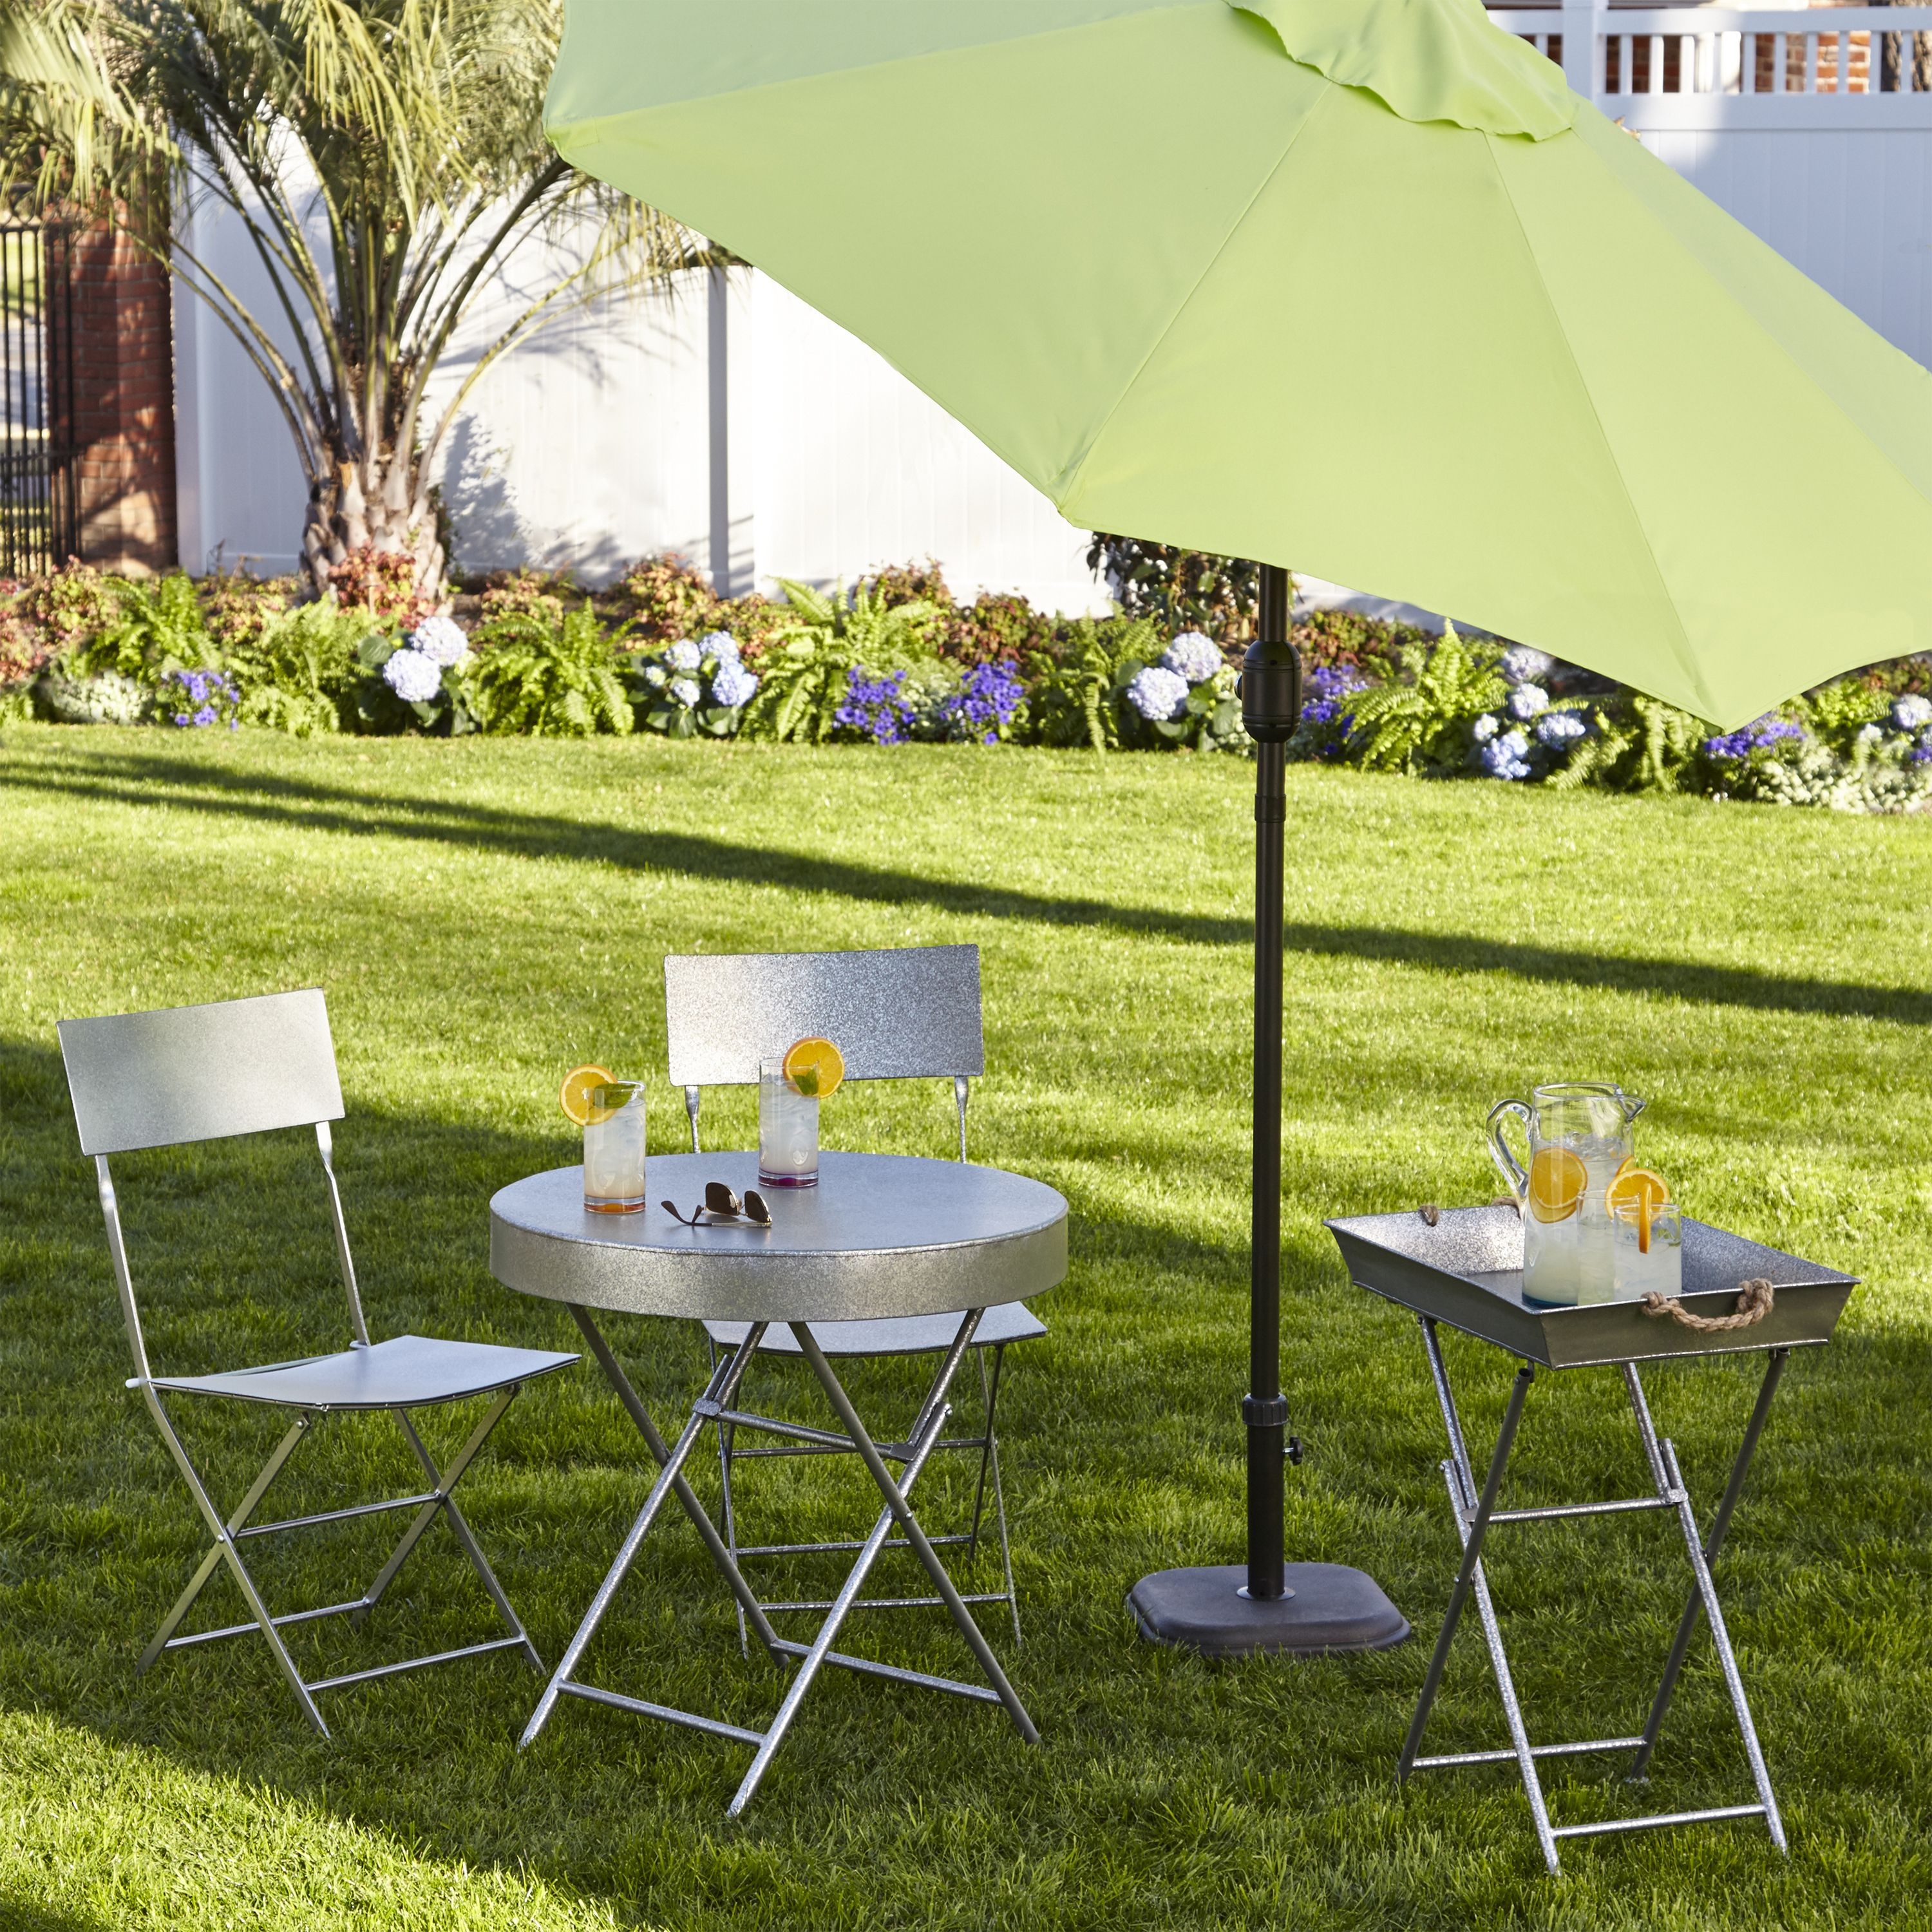 Show Off Your Fun Style And Personality With Eclectic Furniture And Patio  Accents In Bright Colors